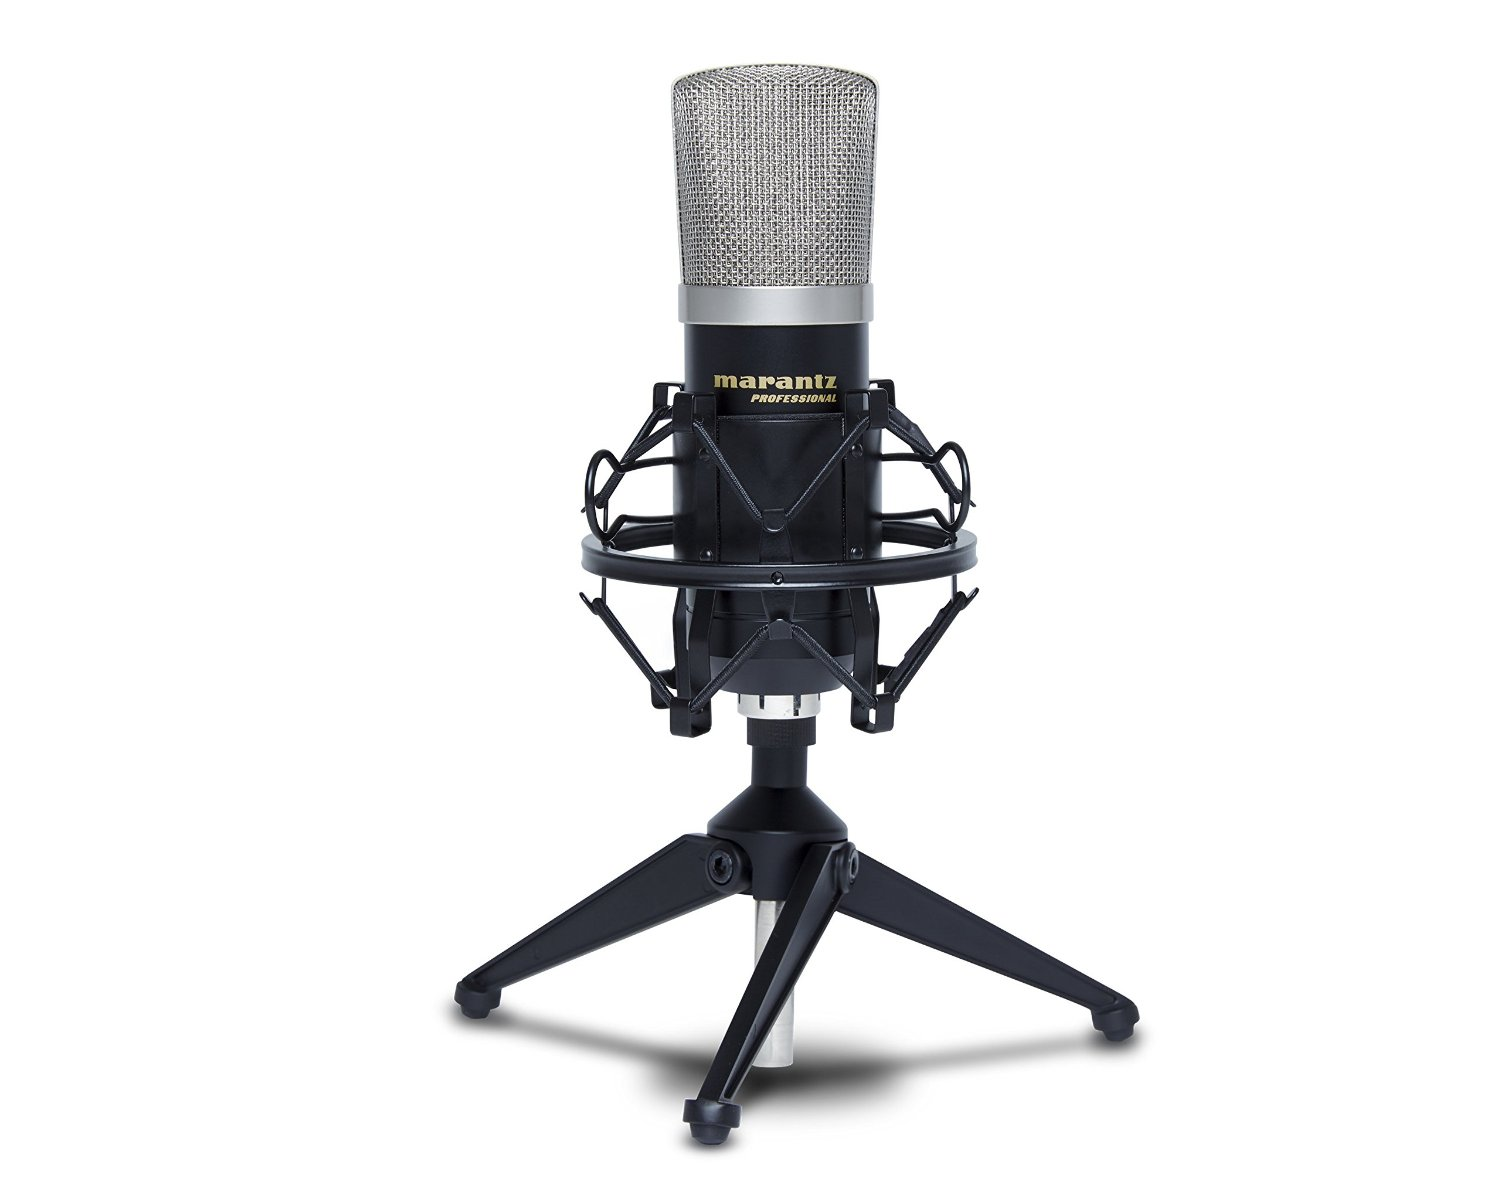 Best Budget Microphones for Podcasting - Marantz Professional MPM-500A